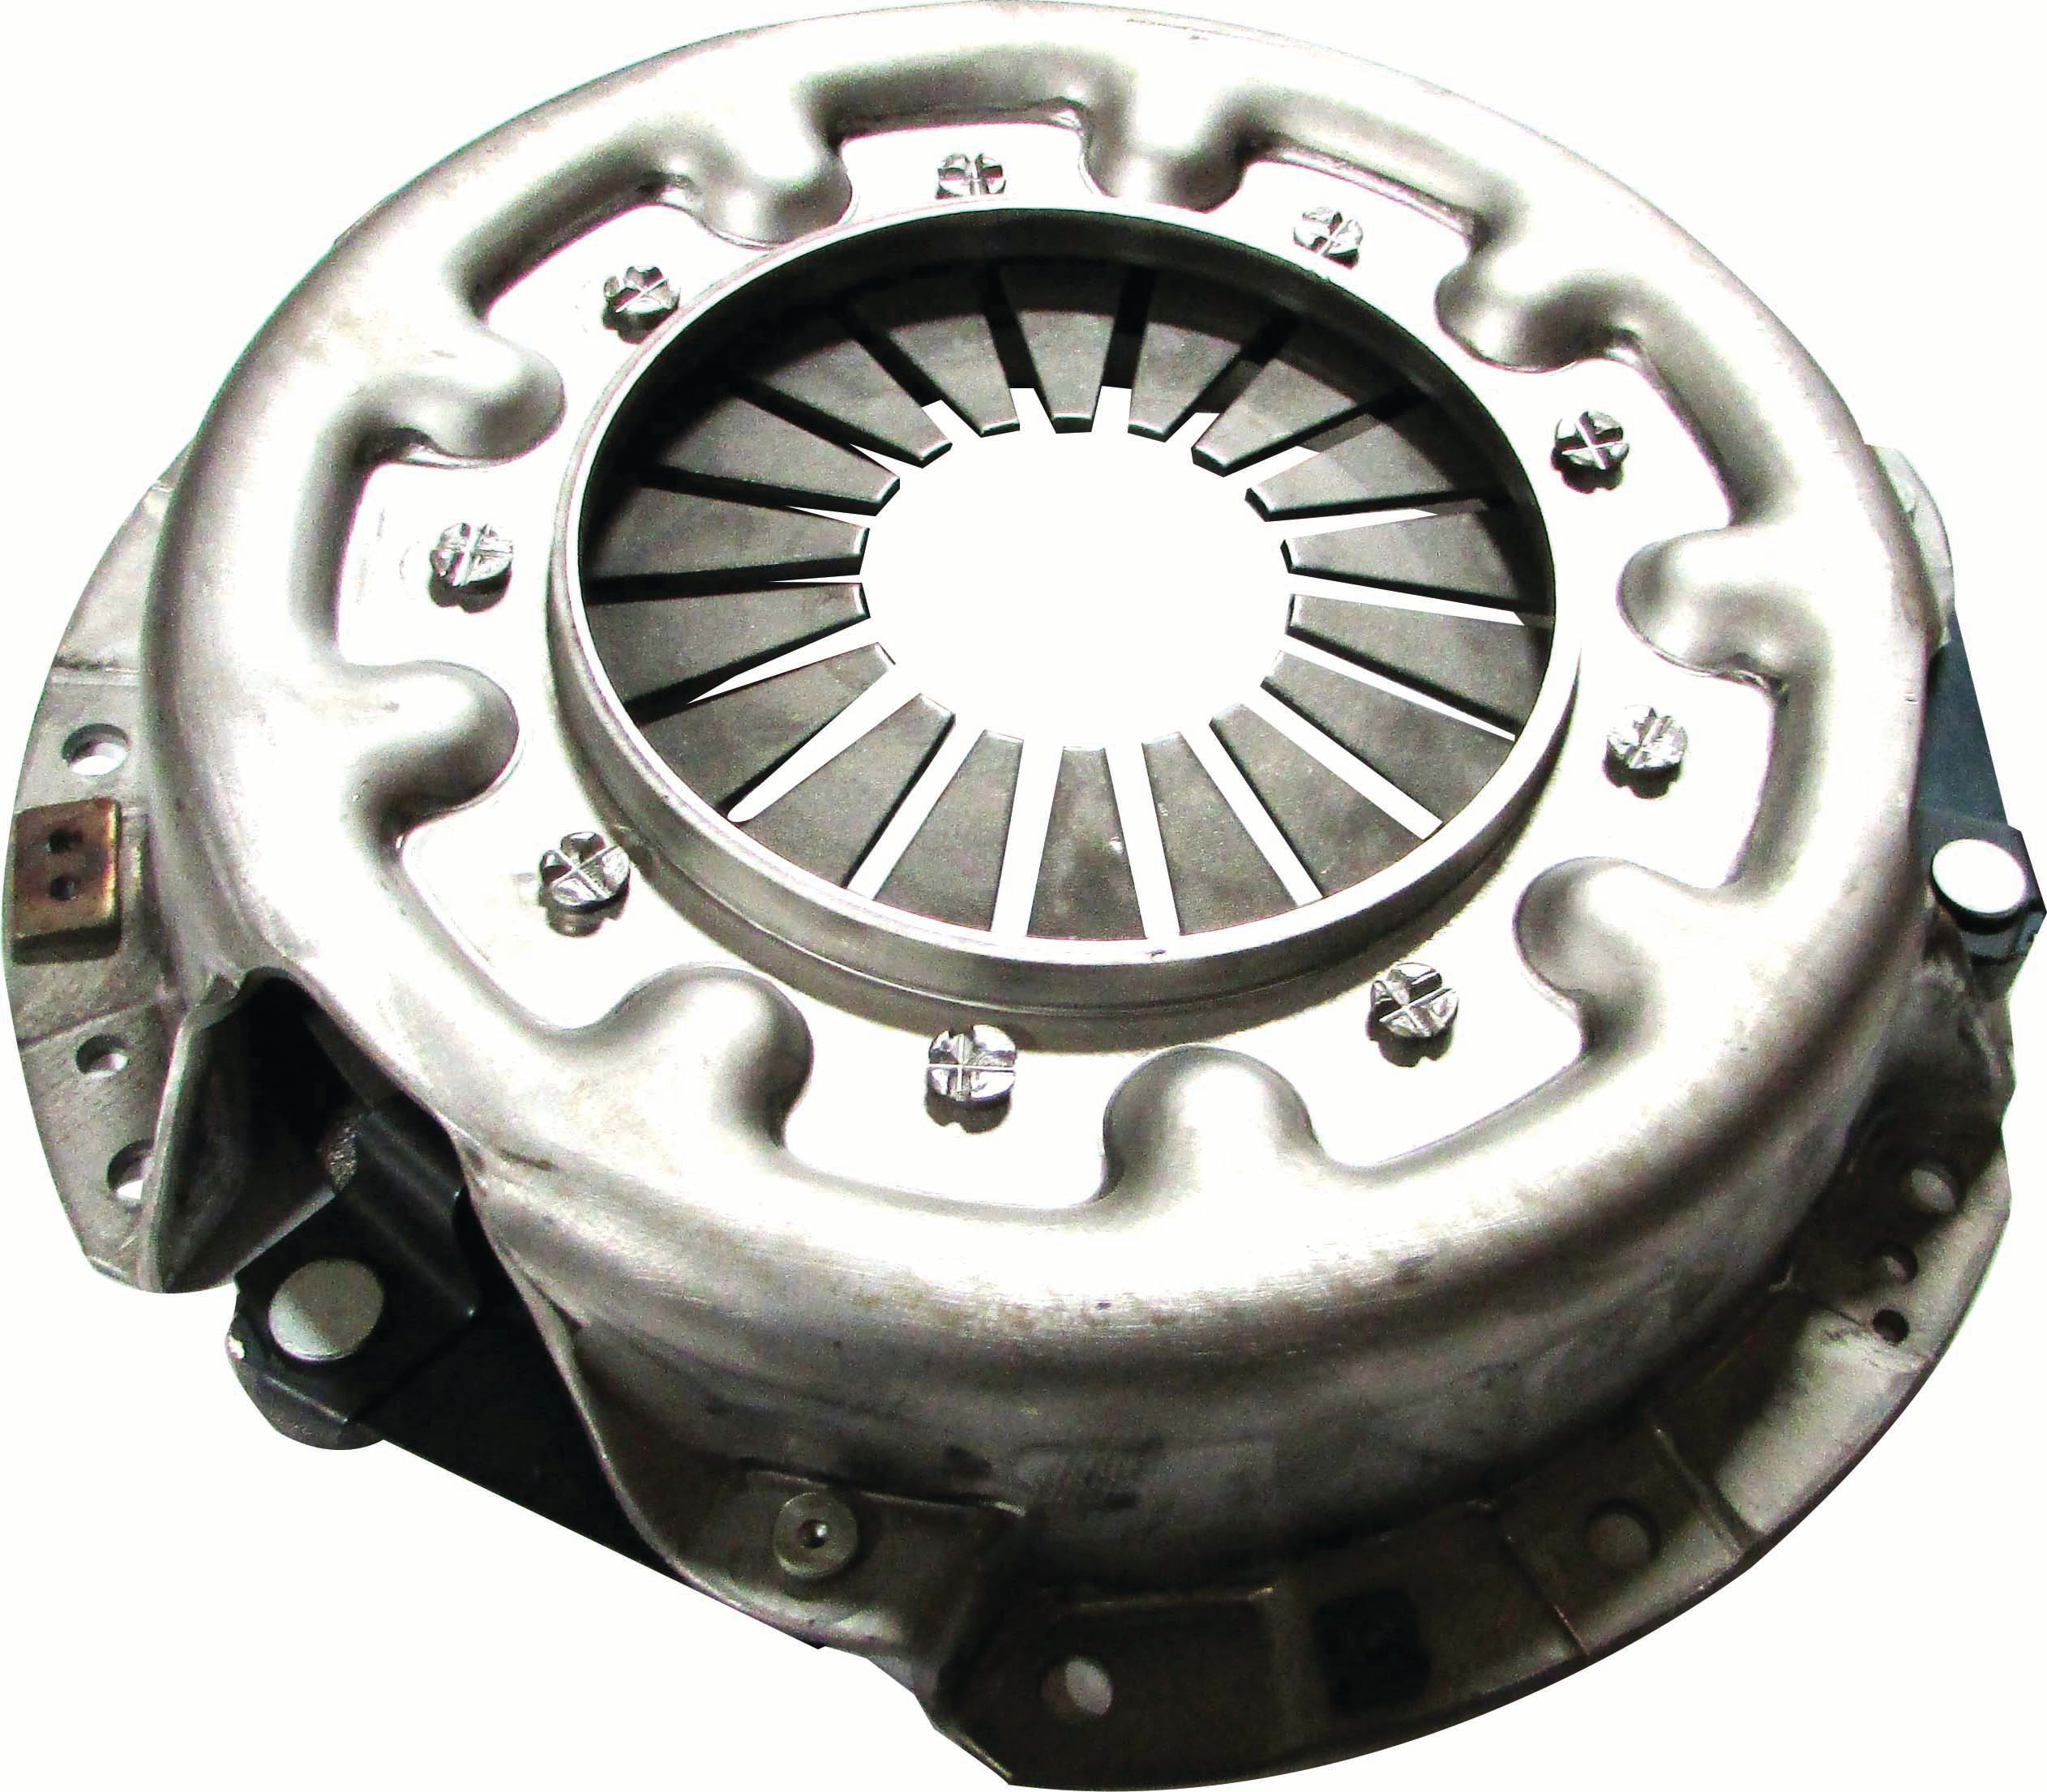 CASE CLUTCH ASSEMBLY 69117